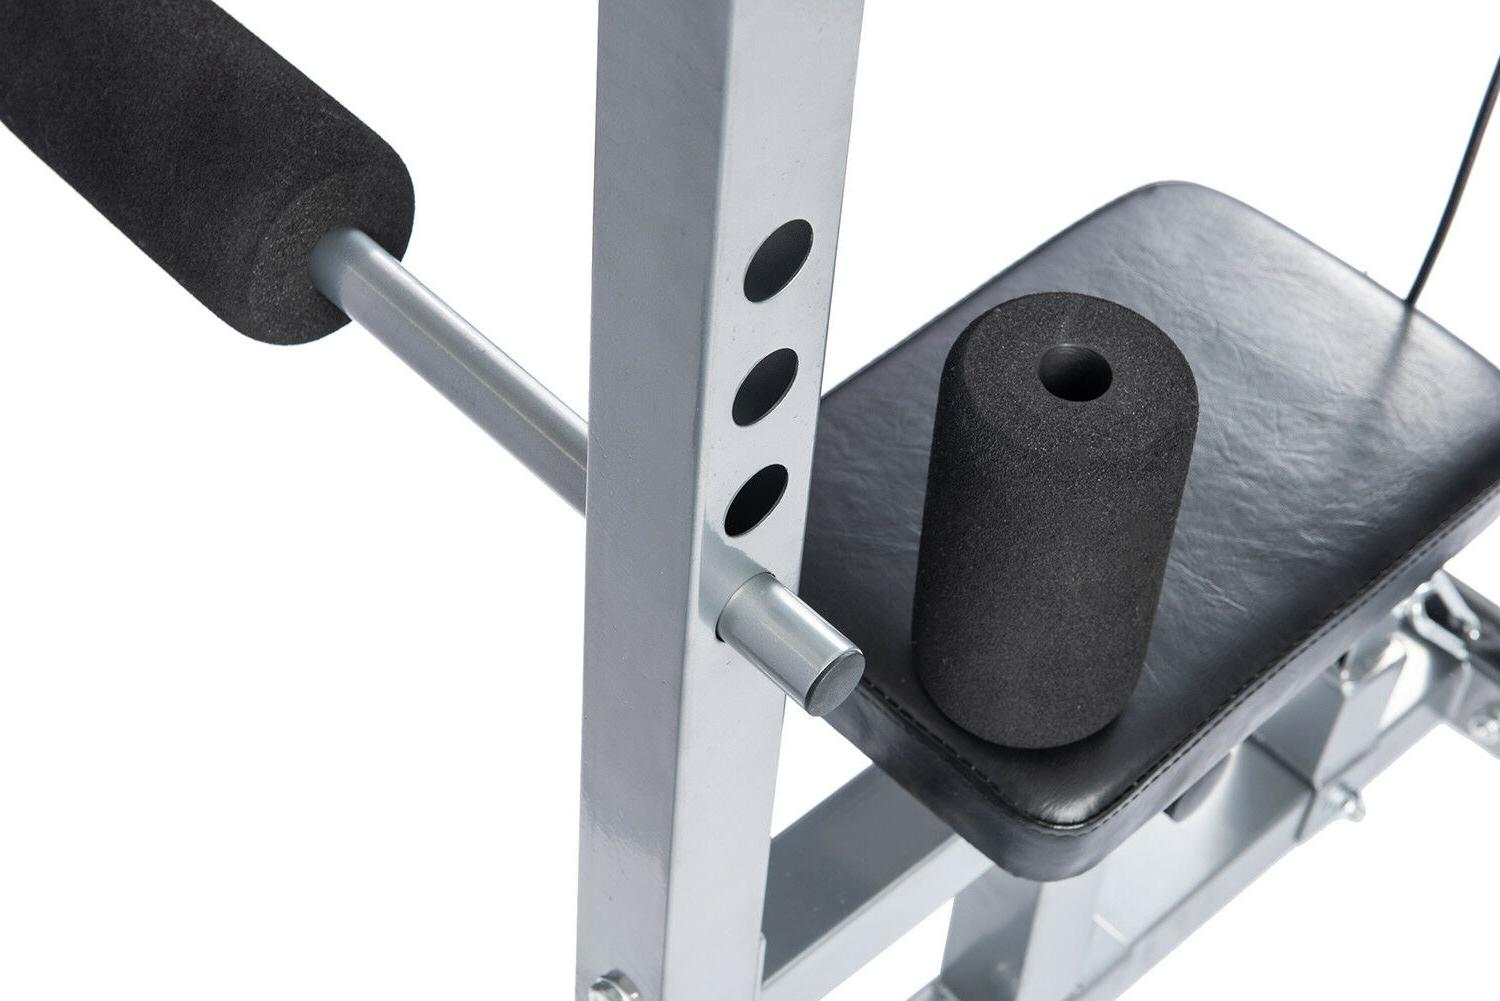 Lat Multifunction Row Bar Cable Gym